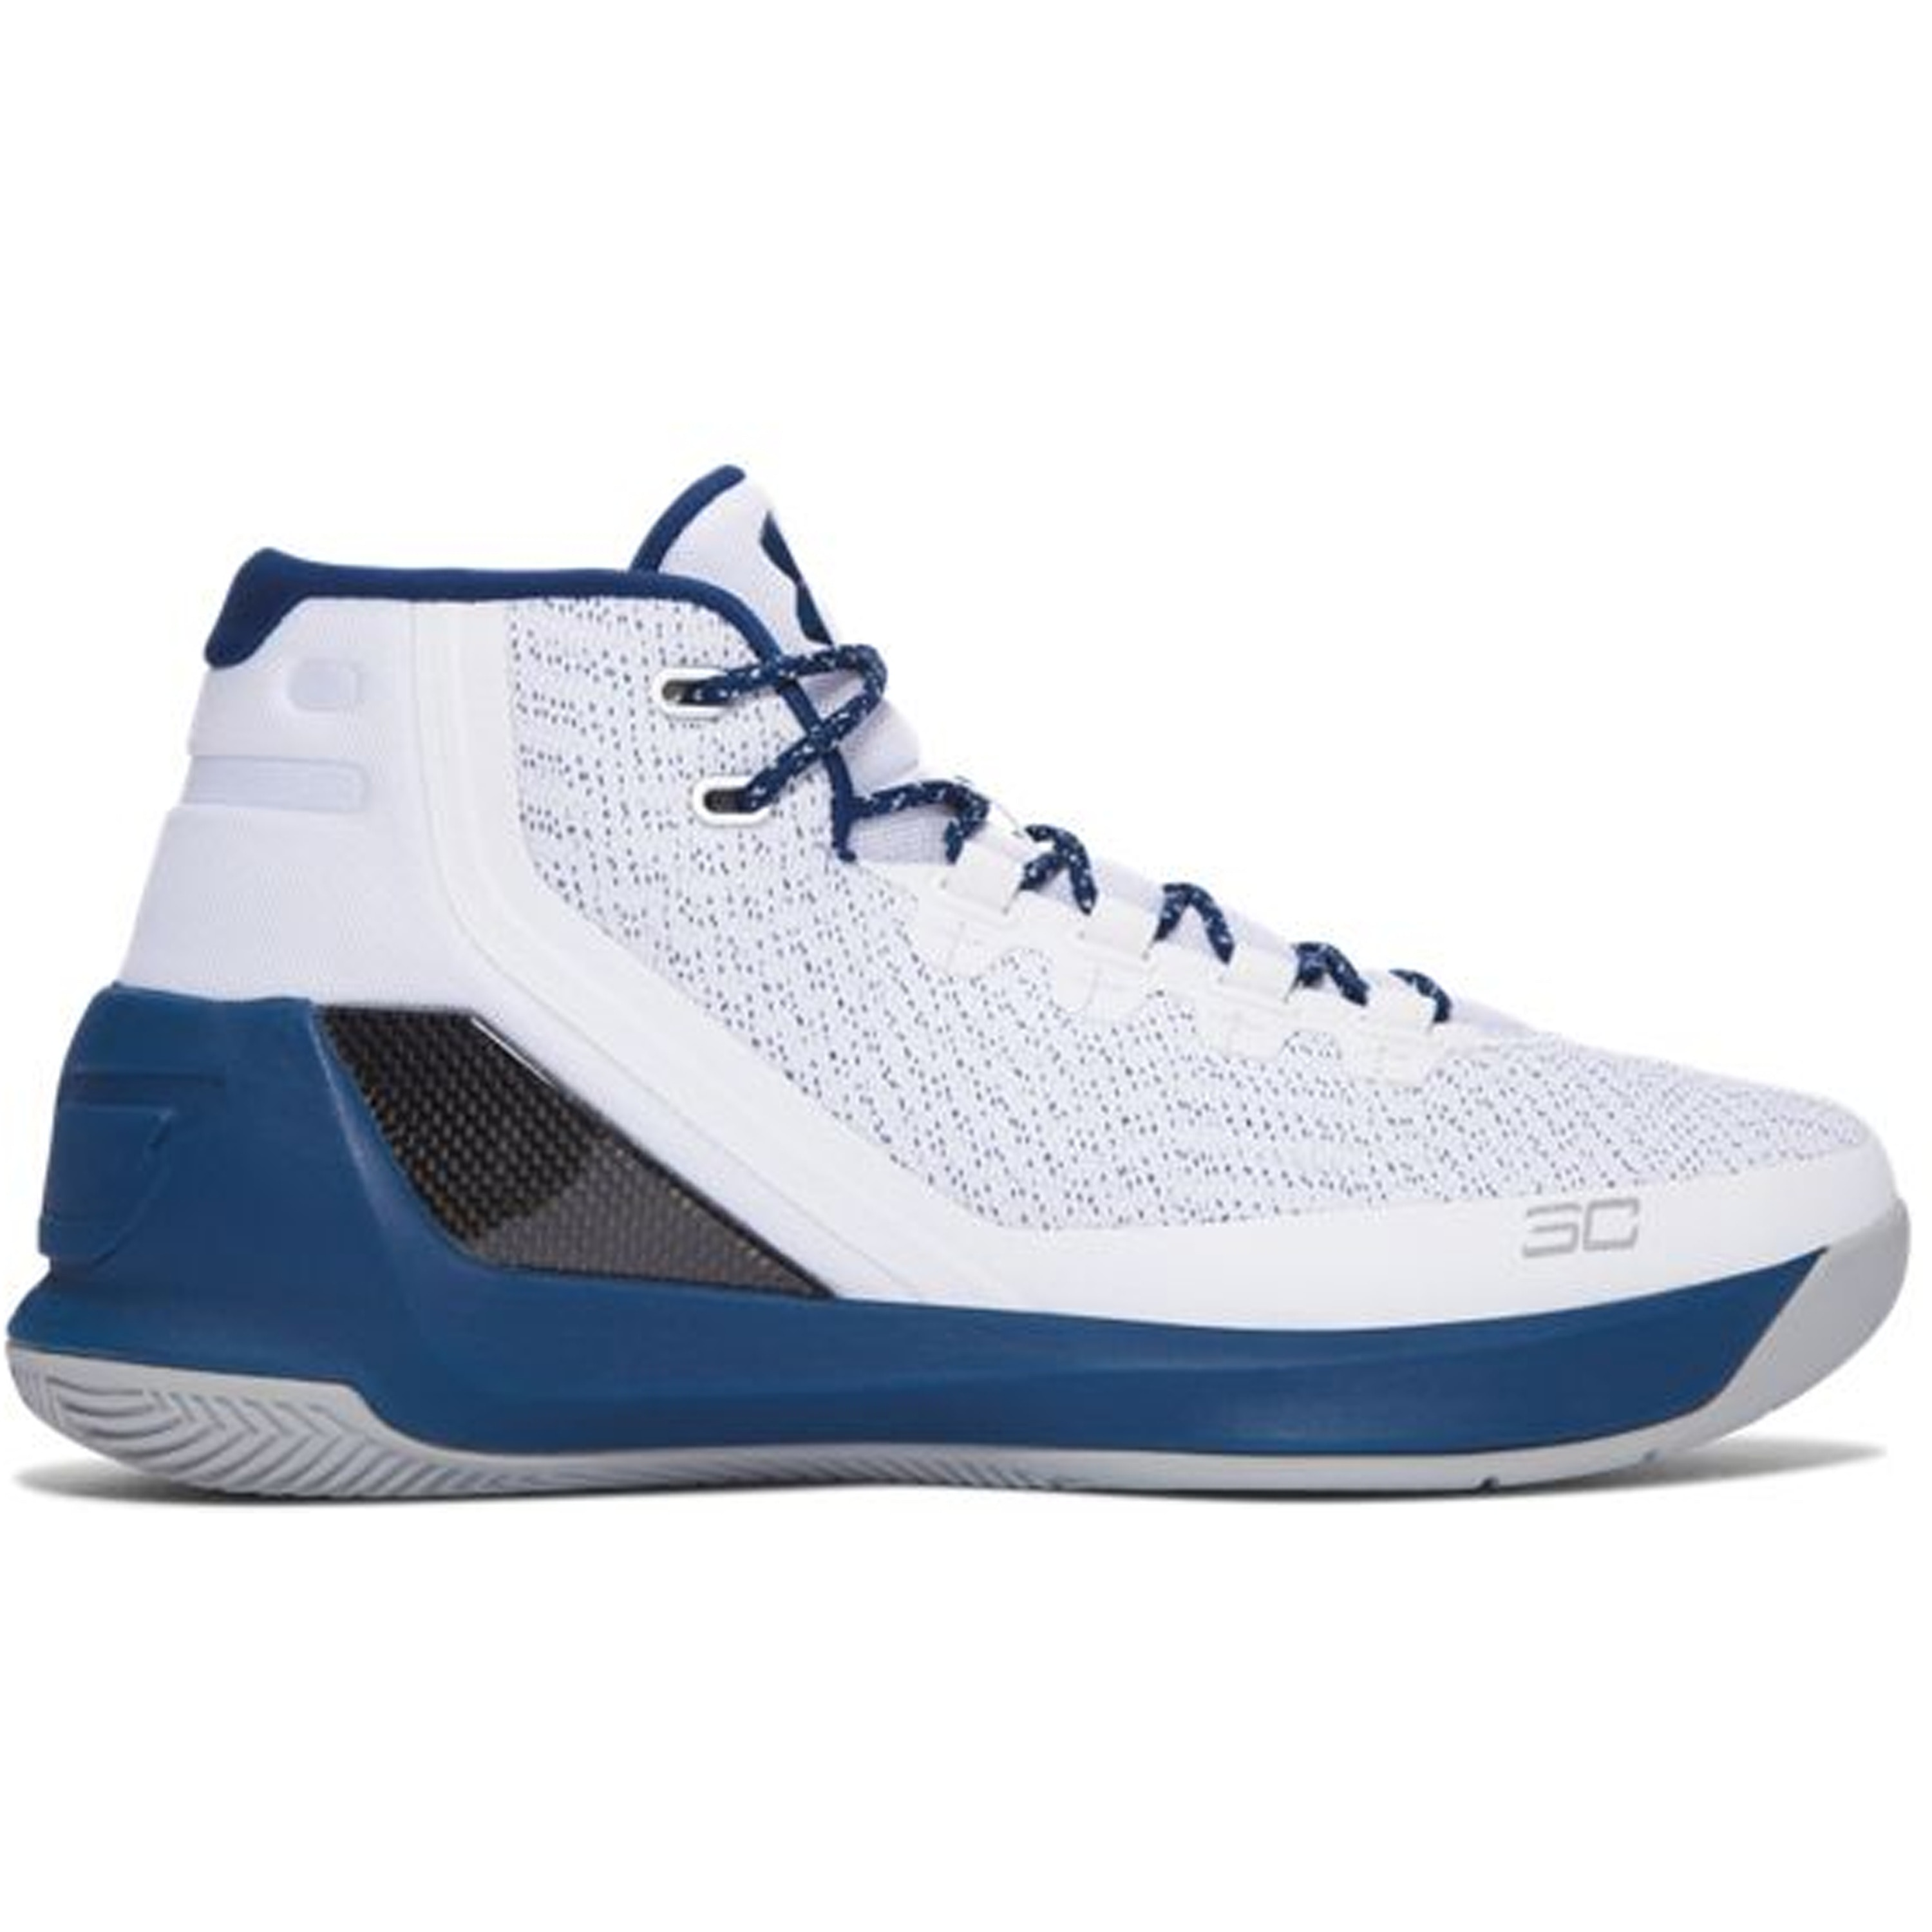 Under Armour Curry 3 White Blackout Navy (1269279-105)